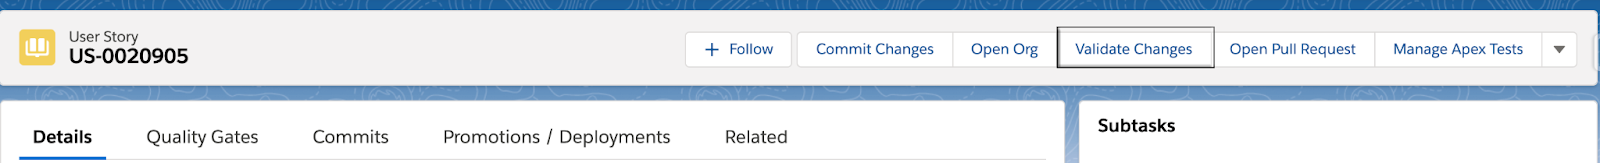 Validate Changes button